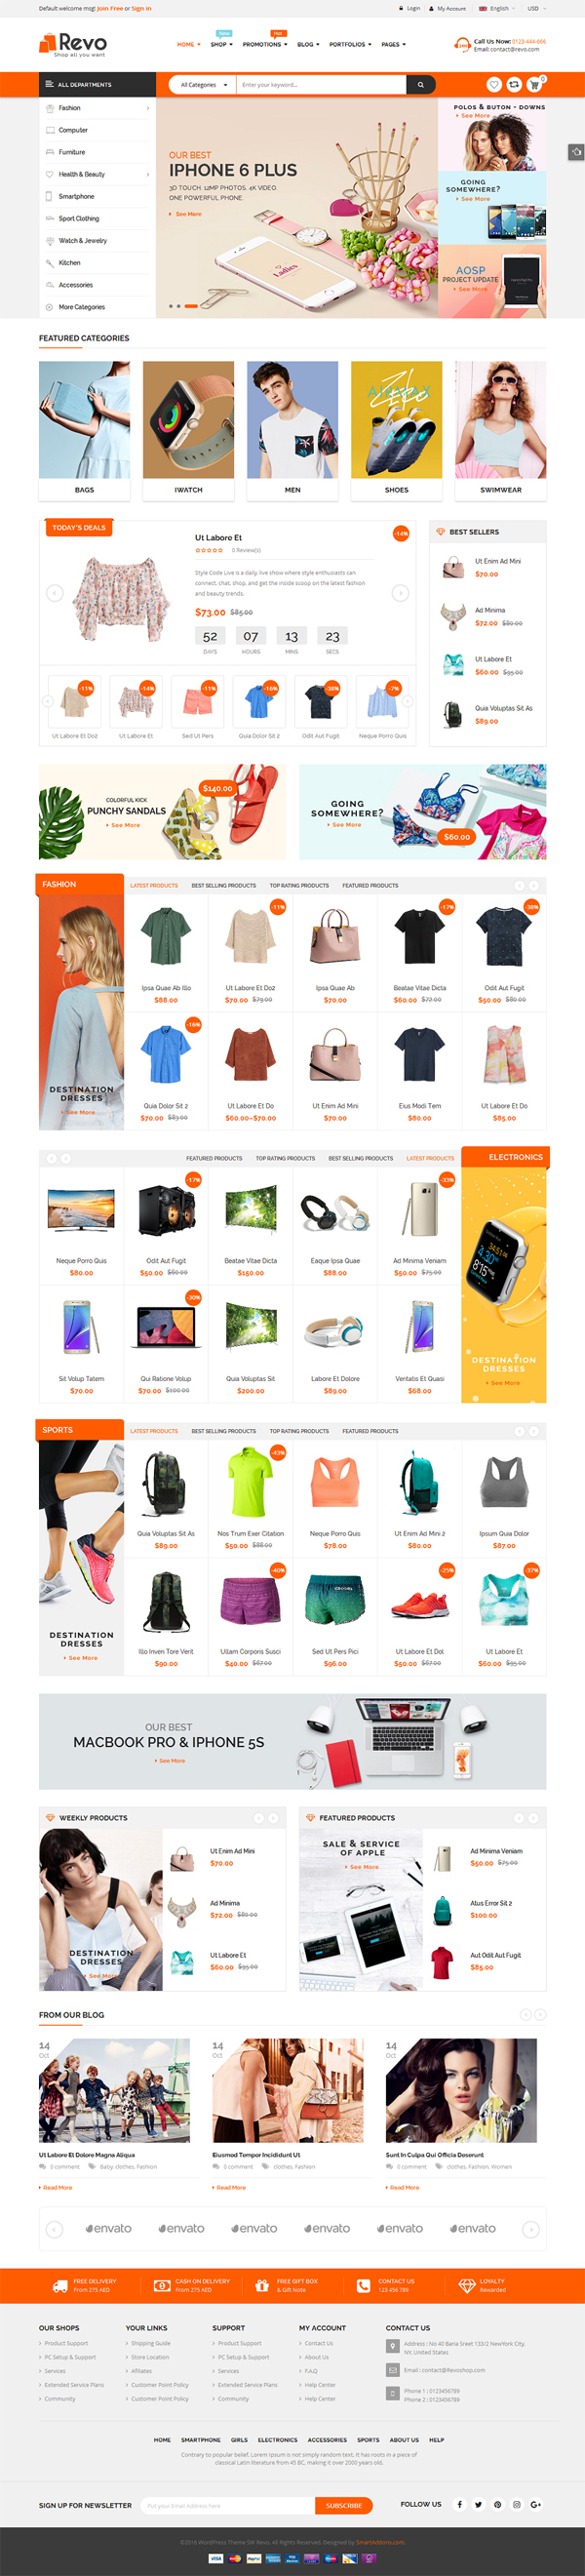 Revo - Multi-purpose WooCommerce WordPress Theme